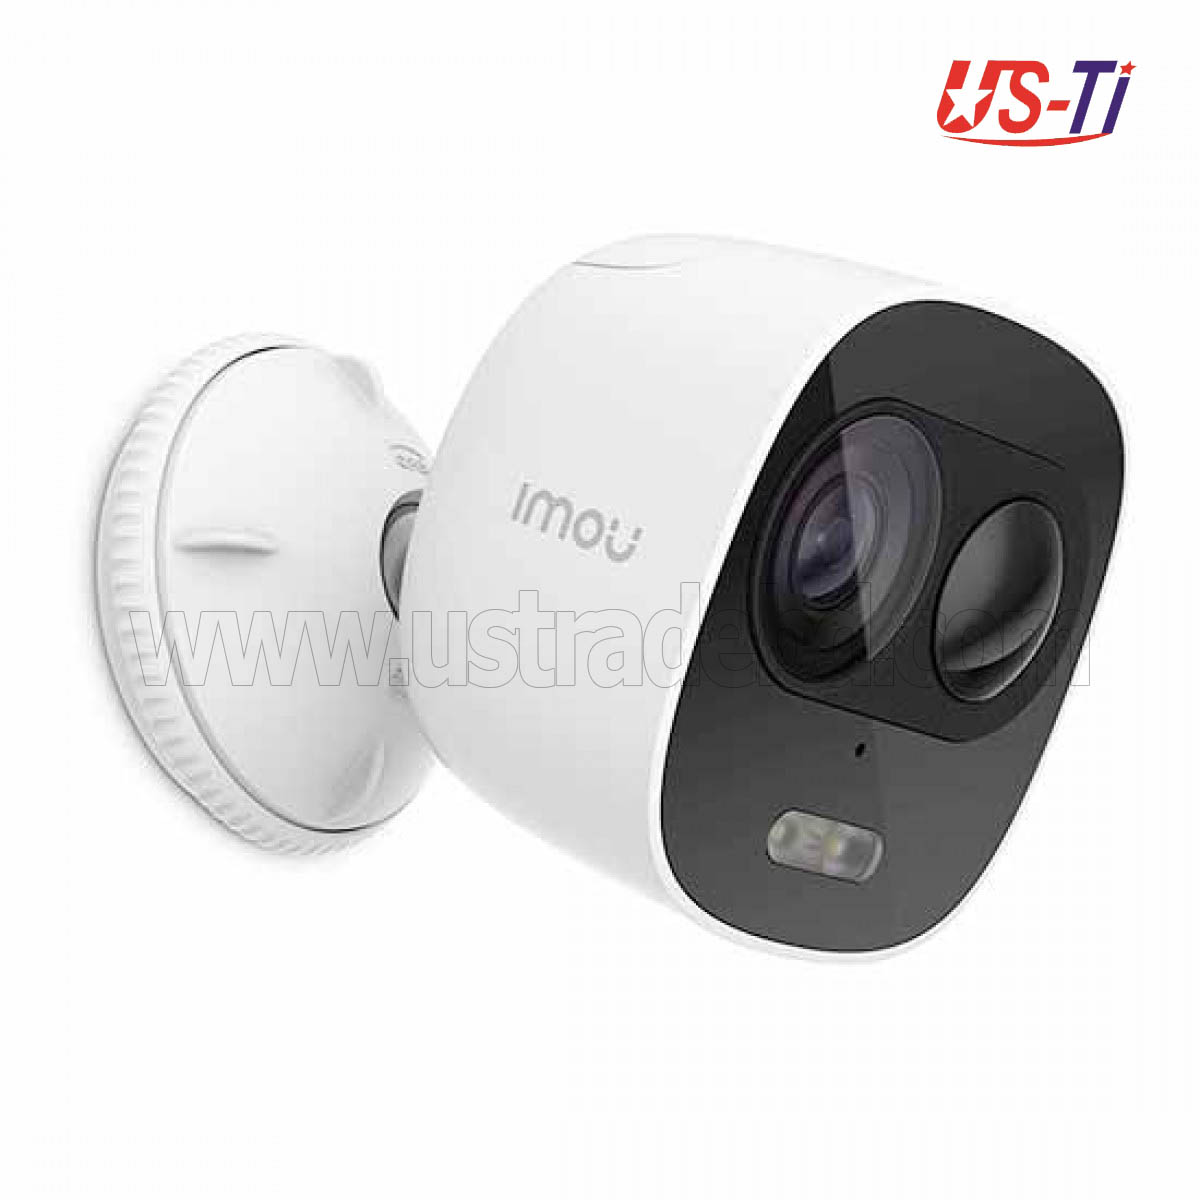 Dahua ( IPC-C26EP ) 02 MP NETWORK IR PIR Wi-Fi CAMERA